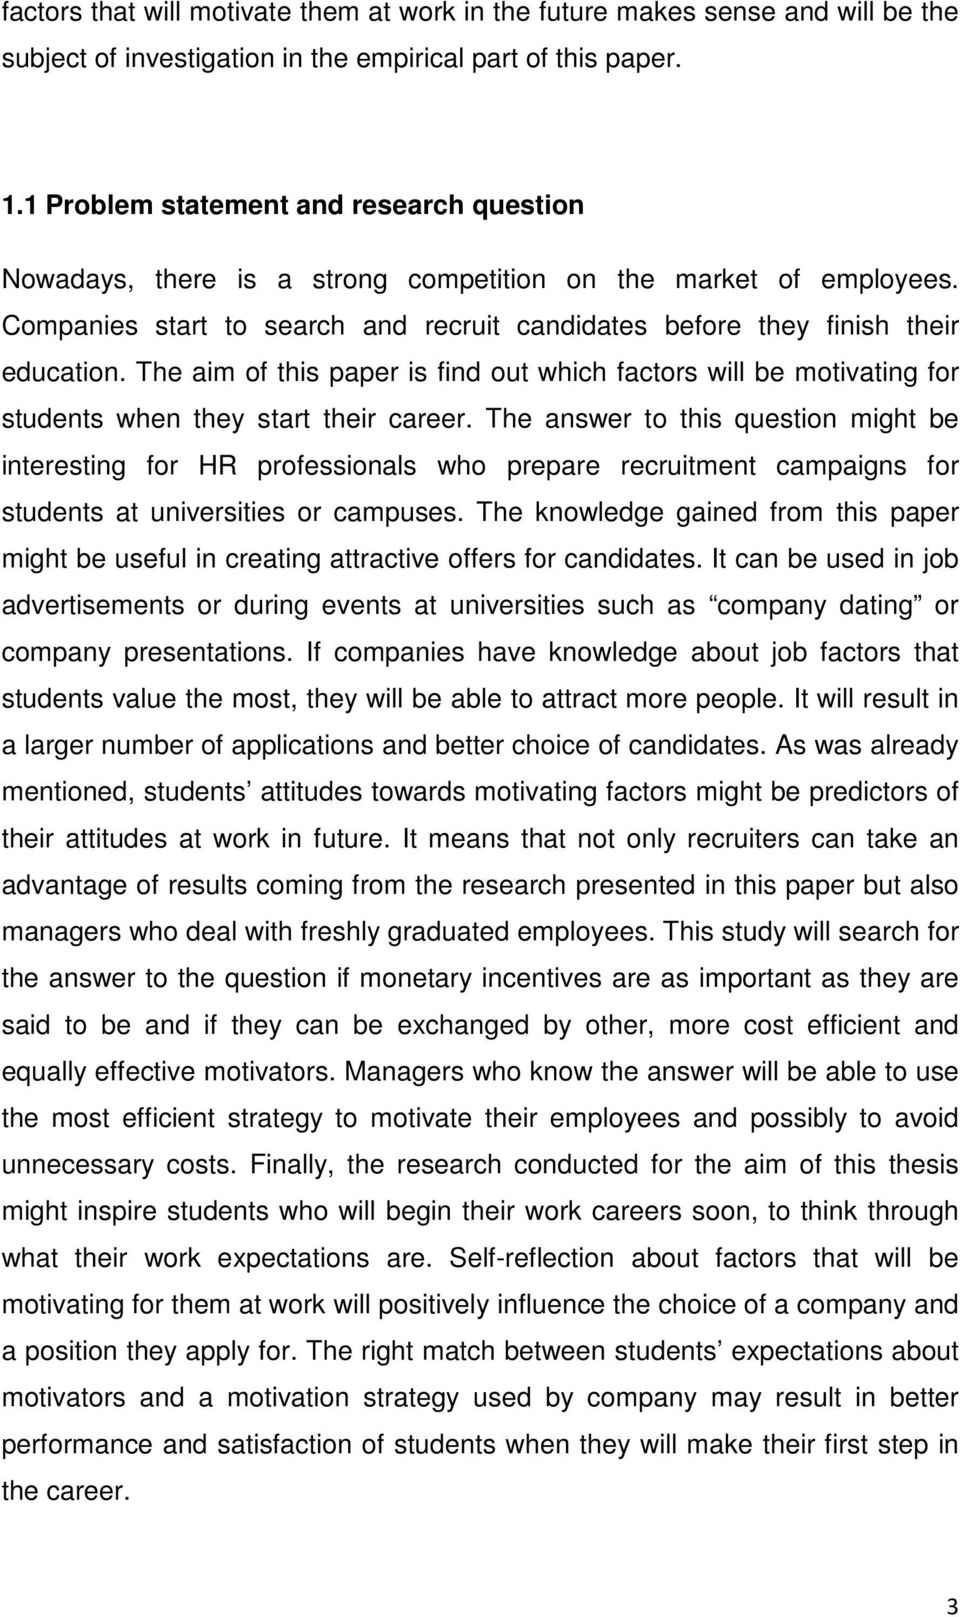 The aim of this paper is find out which factors will be motivating for students when they start their career.